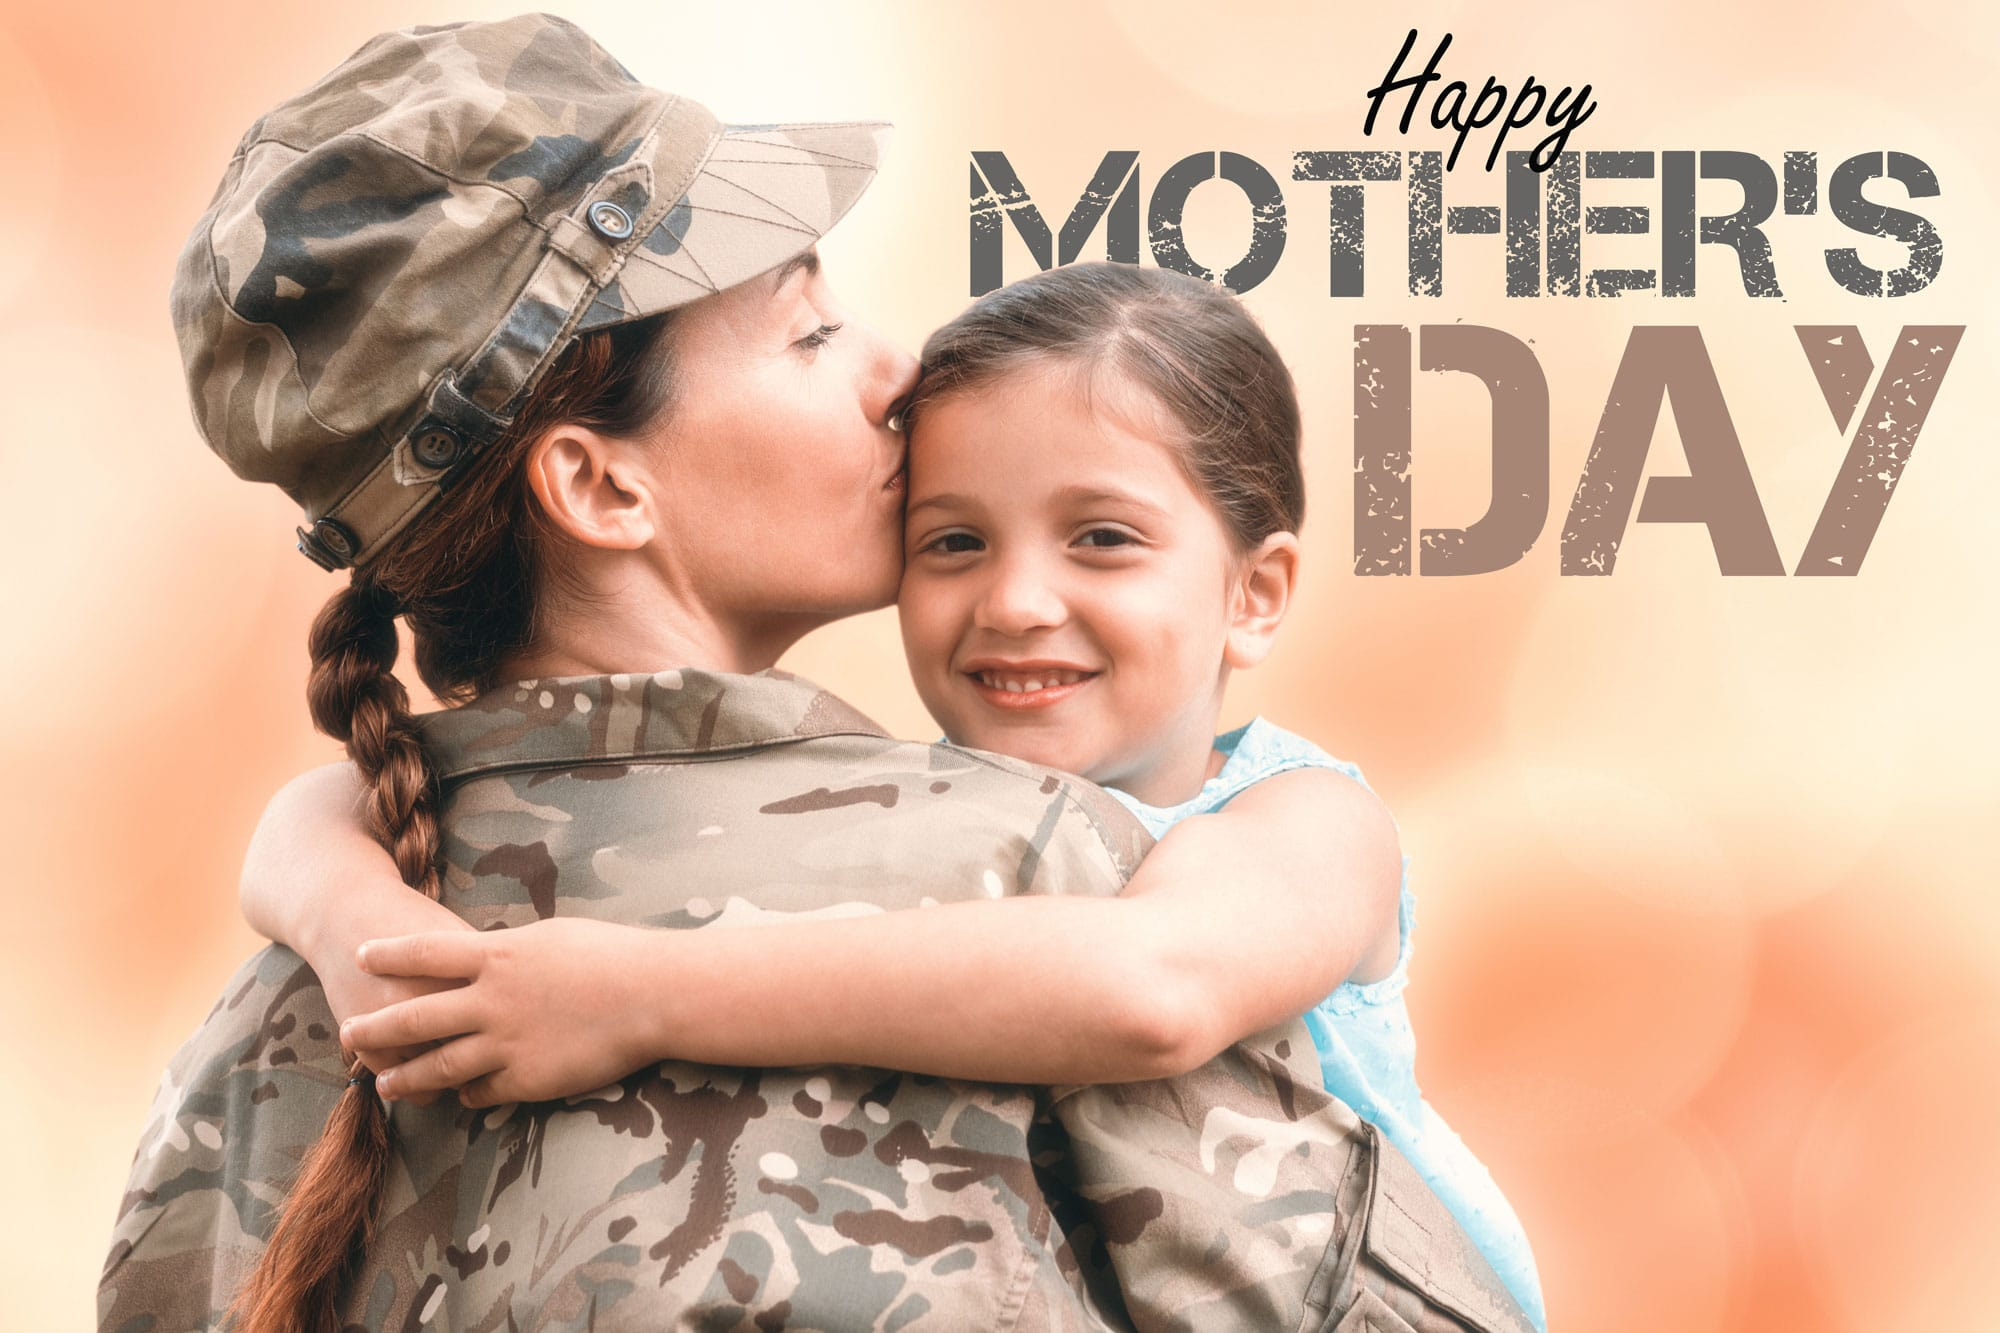 Happy Mother's Day :: May your day be as special as you are!